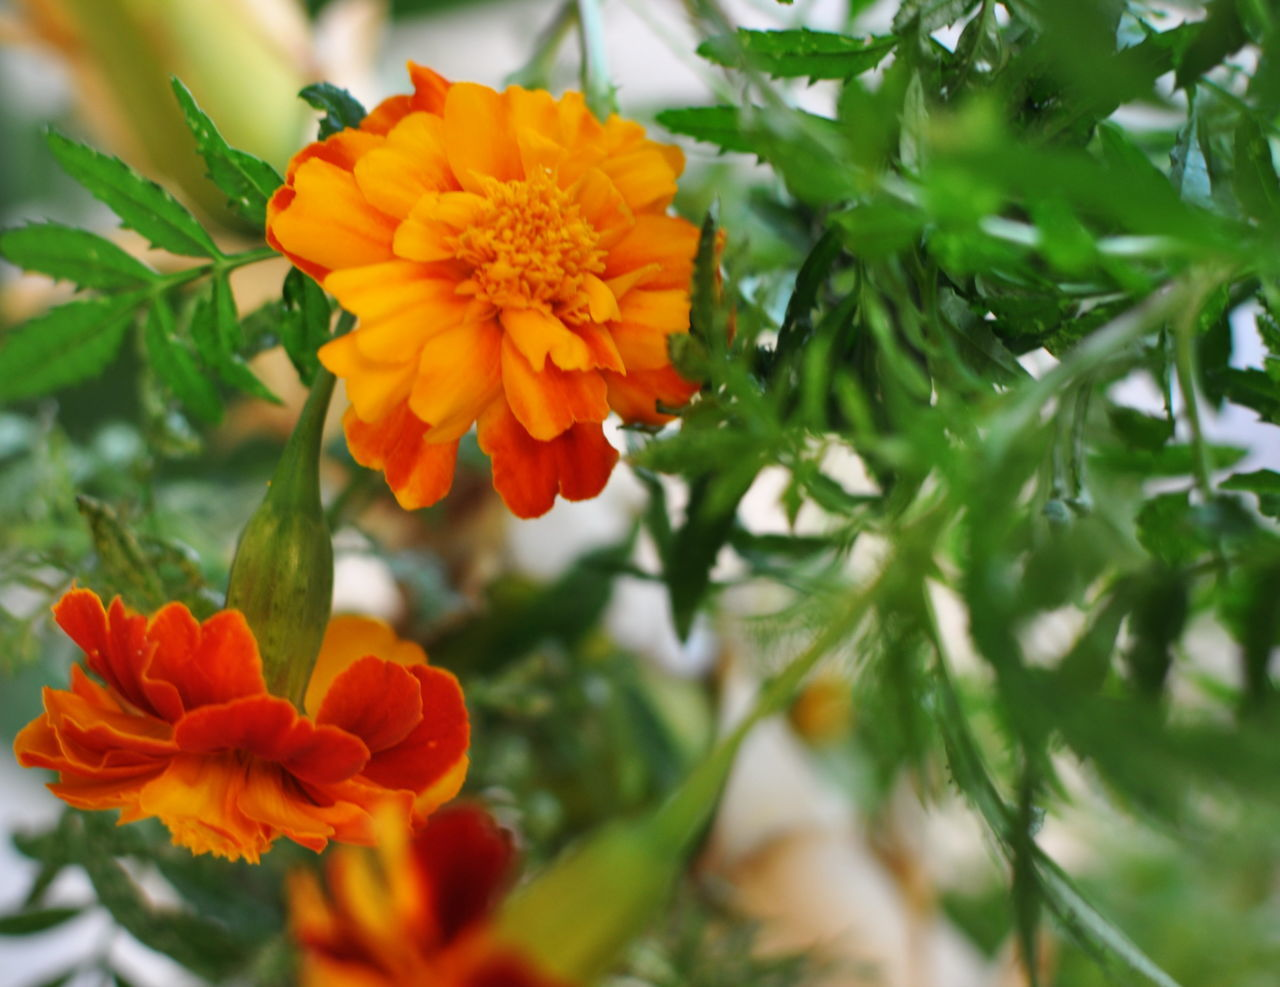 flower, beauty in nature, petal, nature, freshness, fragility, orange color, growth, flower head, plant, no people, blooming, outdoors, day, close-up, marigold